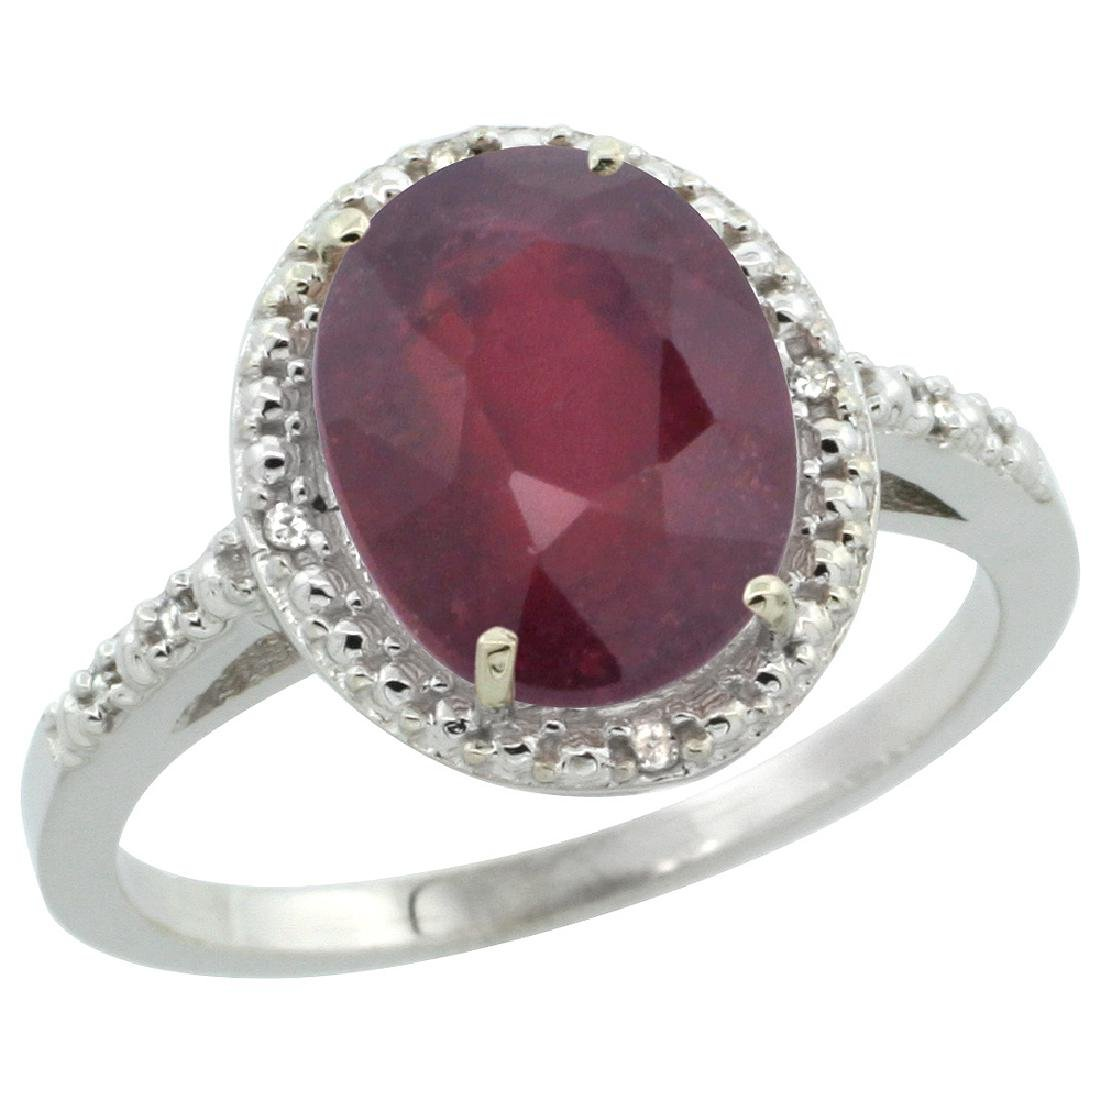 Natural 3.66 ctw Ruby & Diamond Engagement Ring 14K